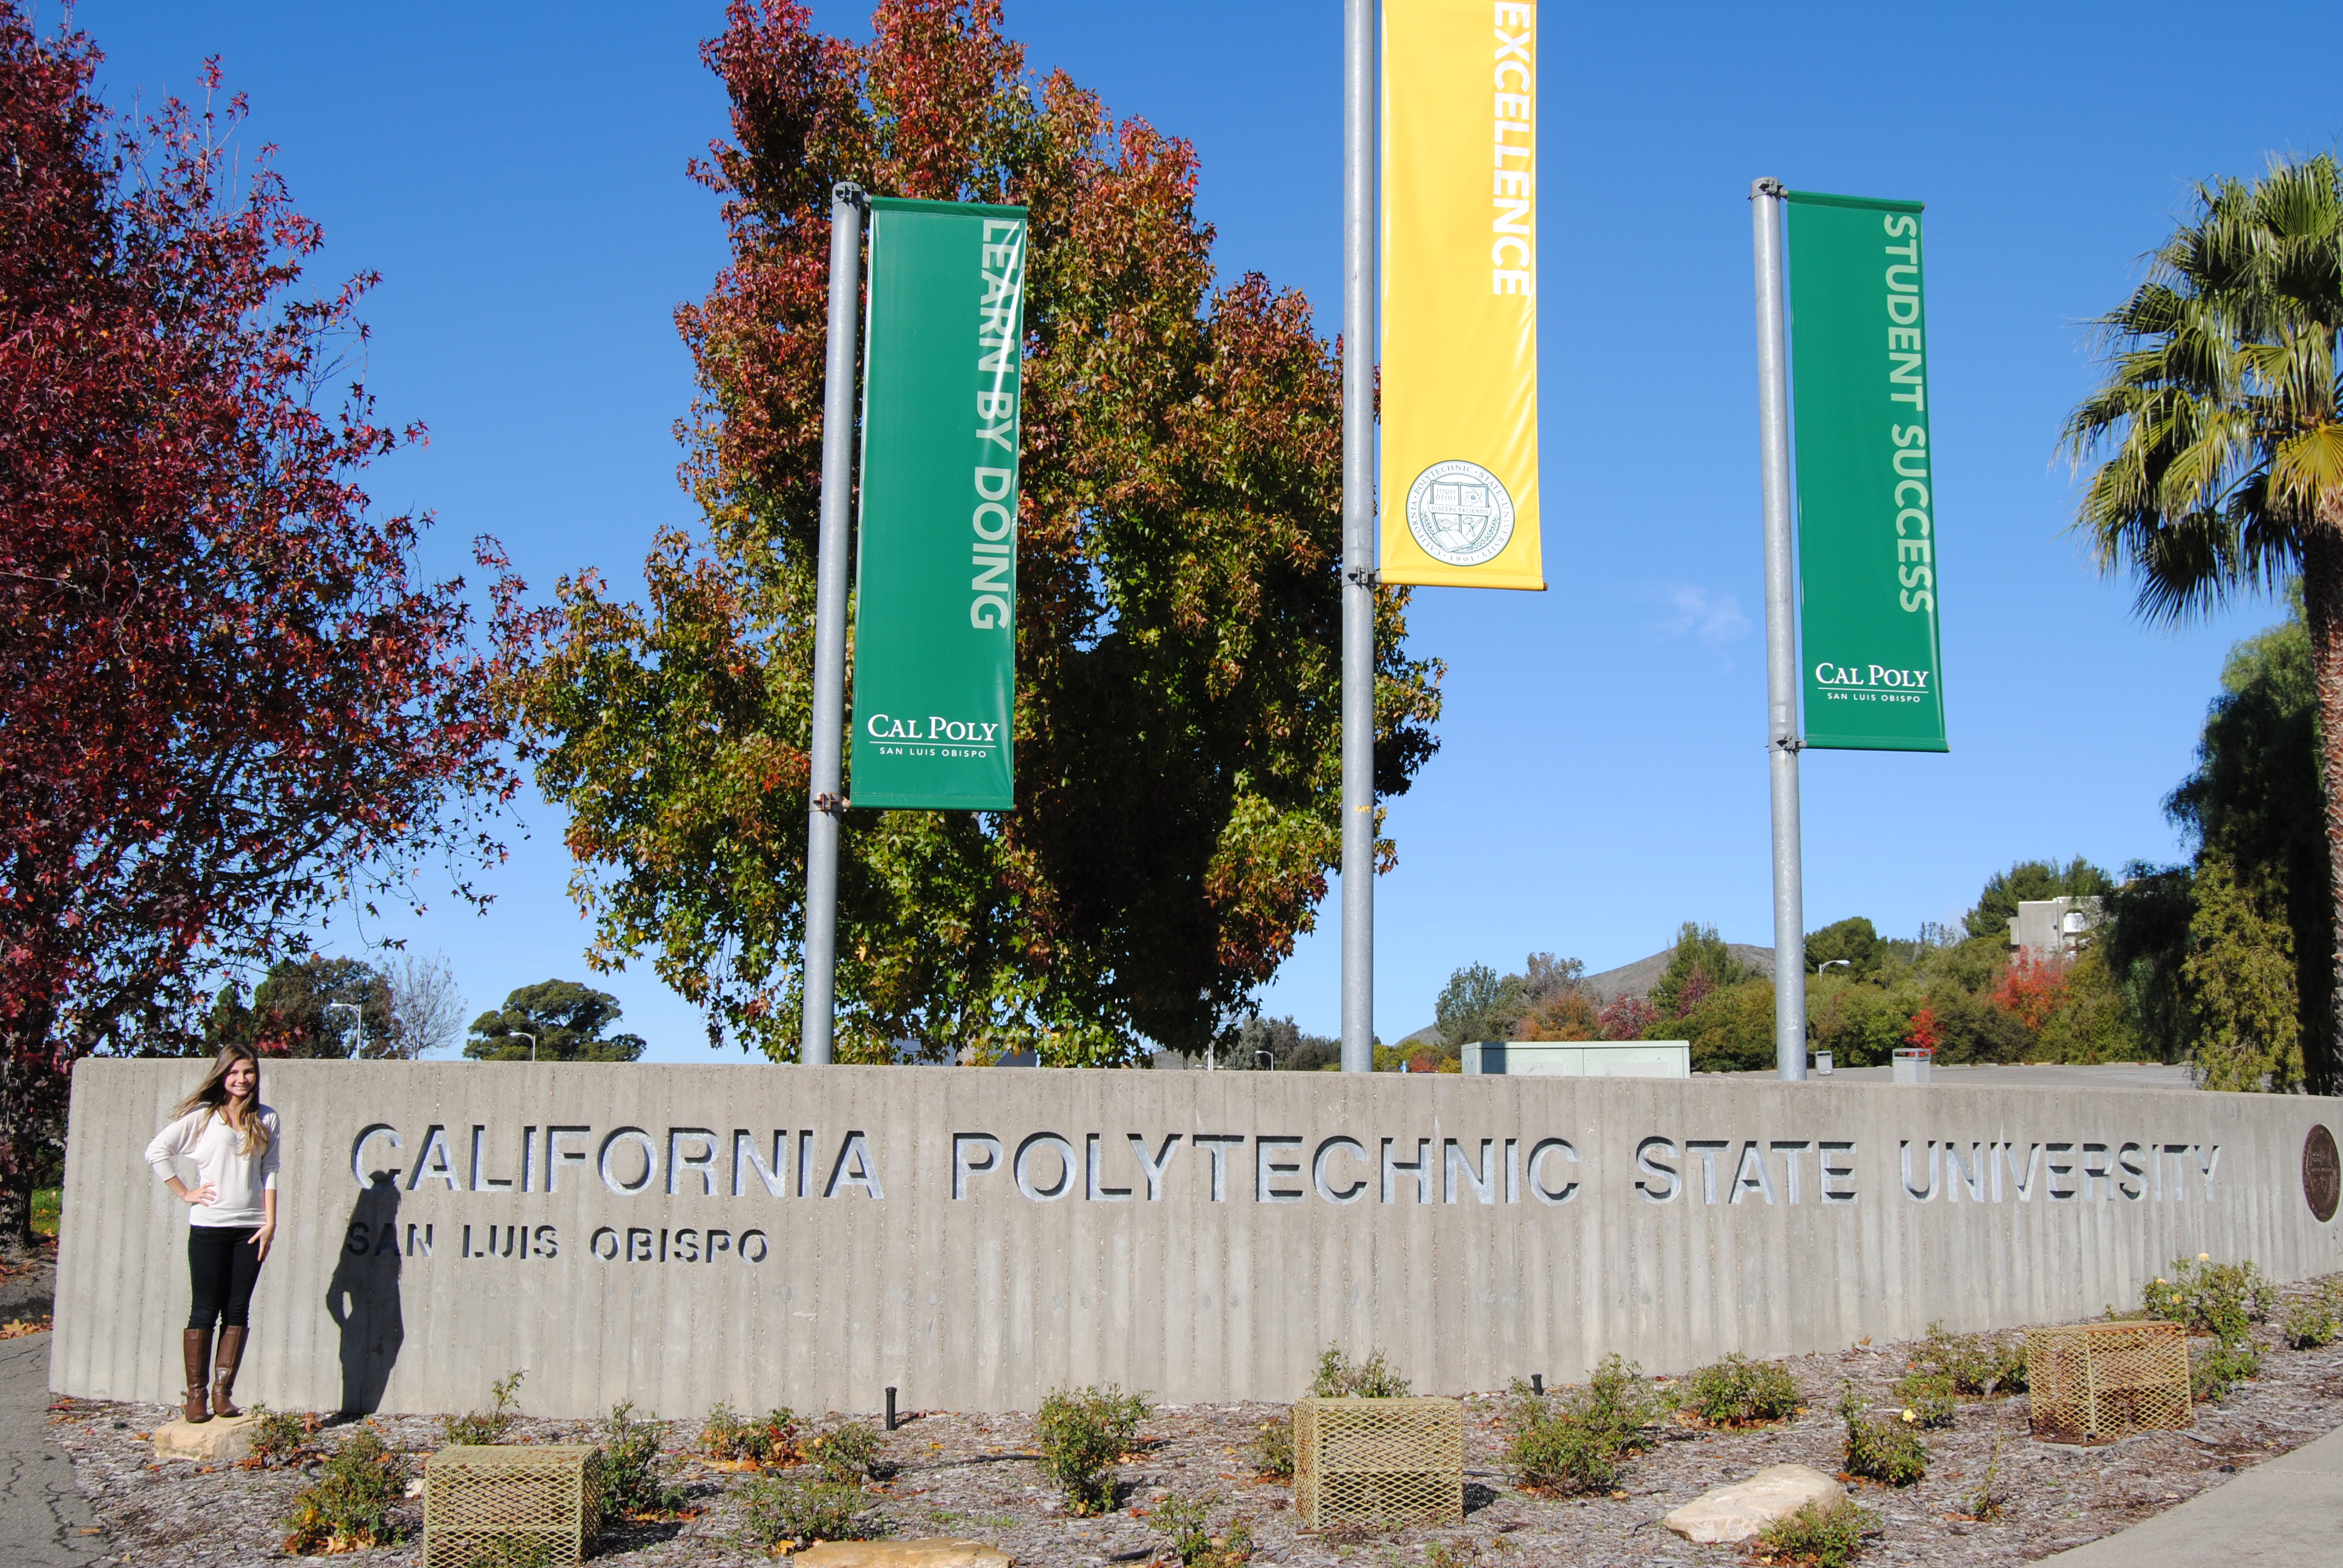 calpoly+about2.JPG